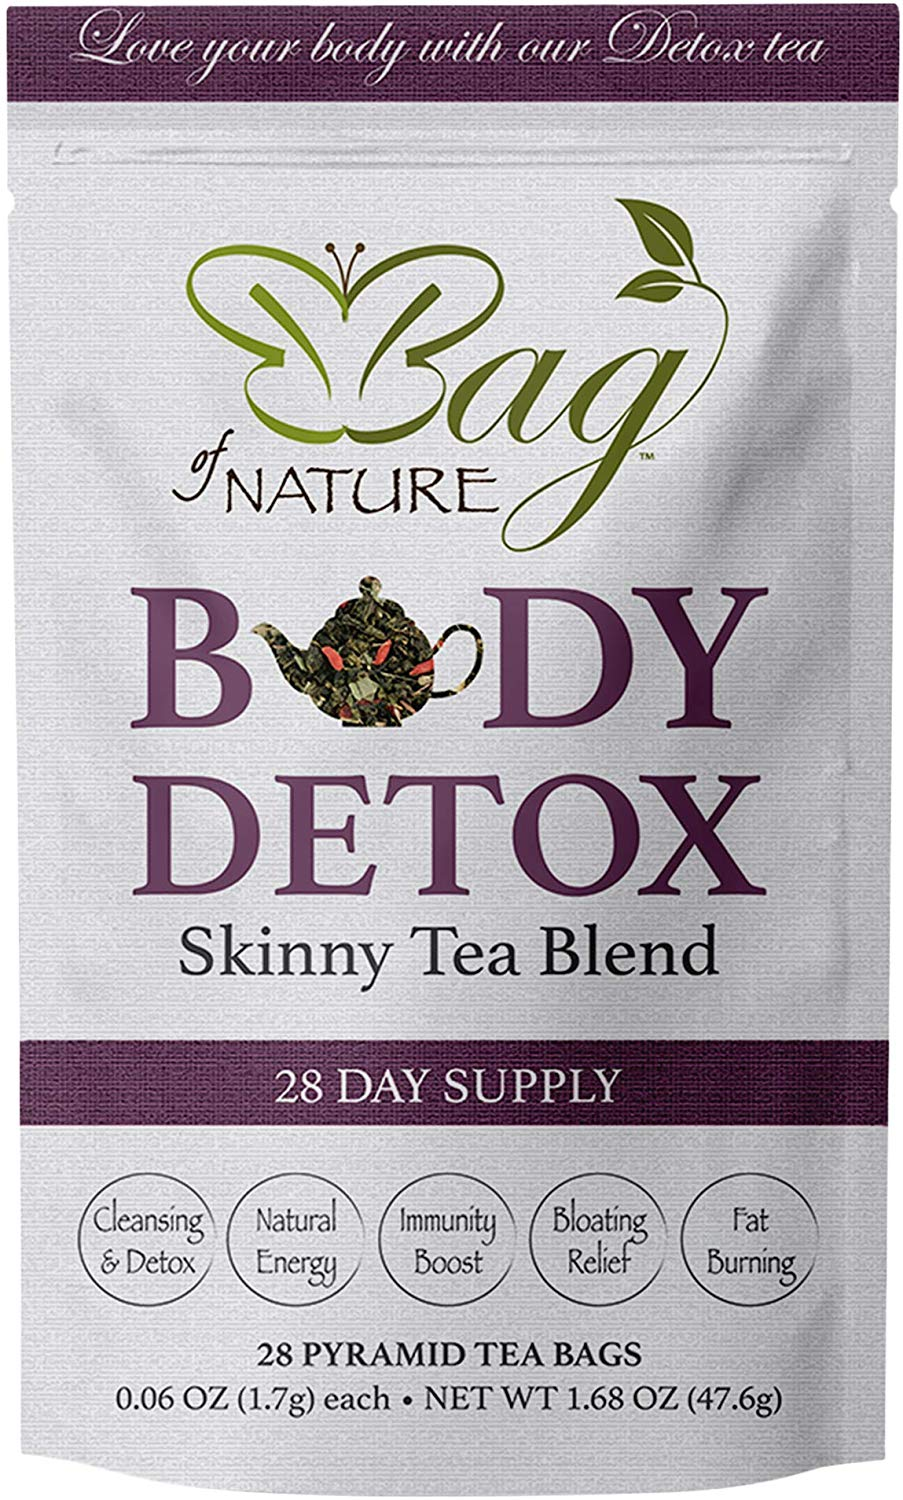 Body Detox by Bag of Nature - Skinny Tea Blend, Supports Fat Burning and Healthy Weight Loss, Promotes Gut Health and Bloating Relief for Men and Women - 28-Day Supply